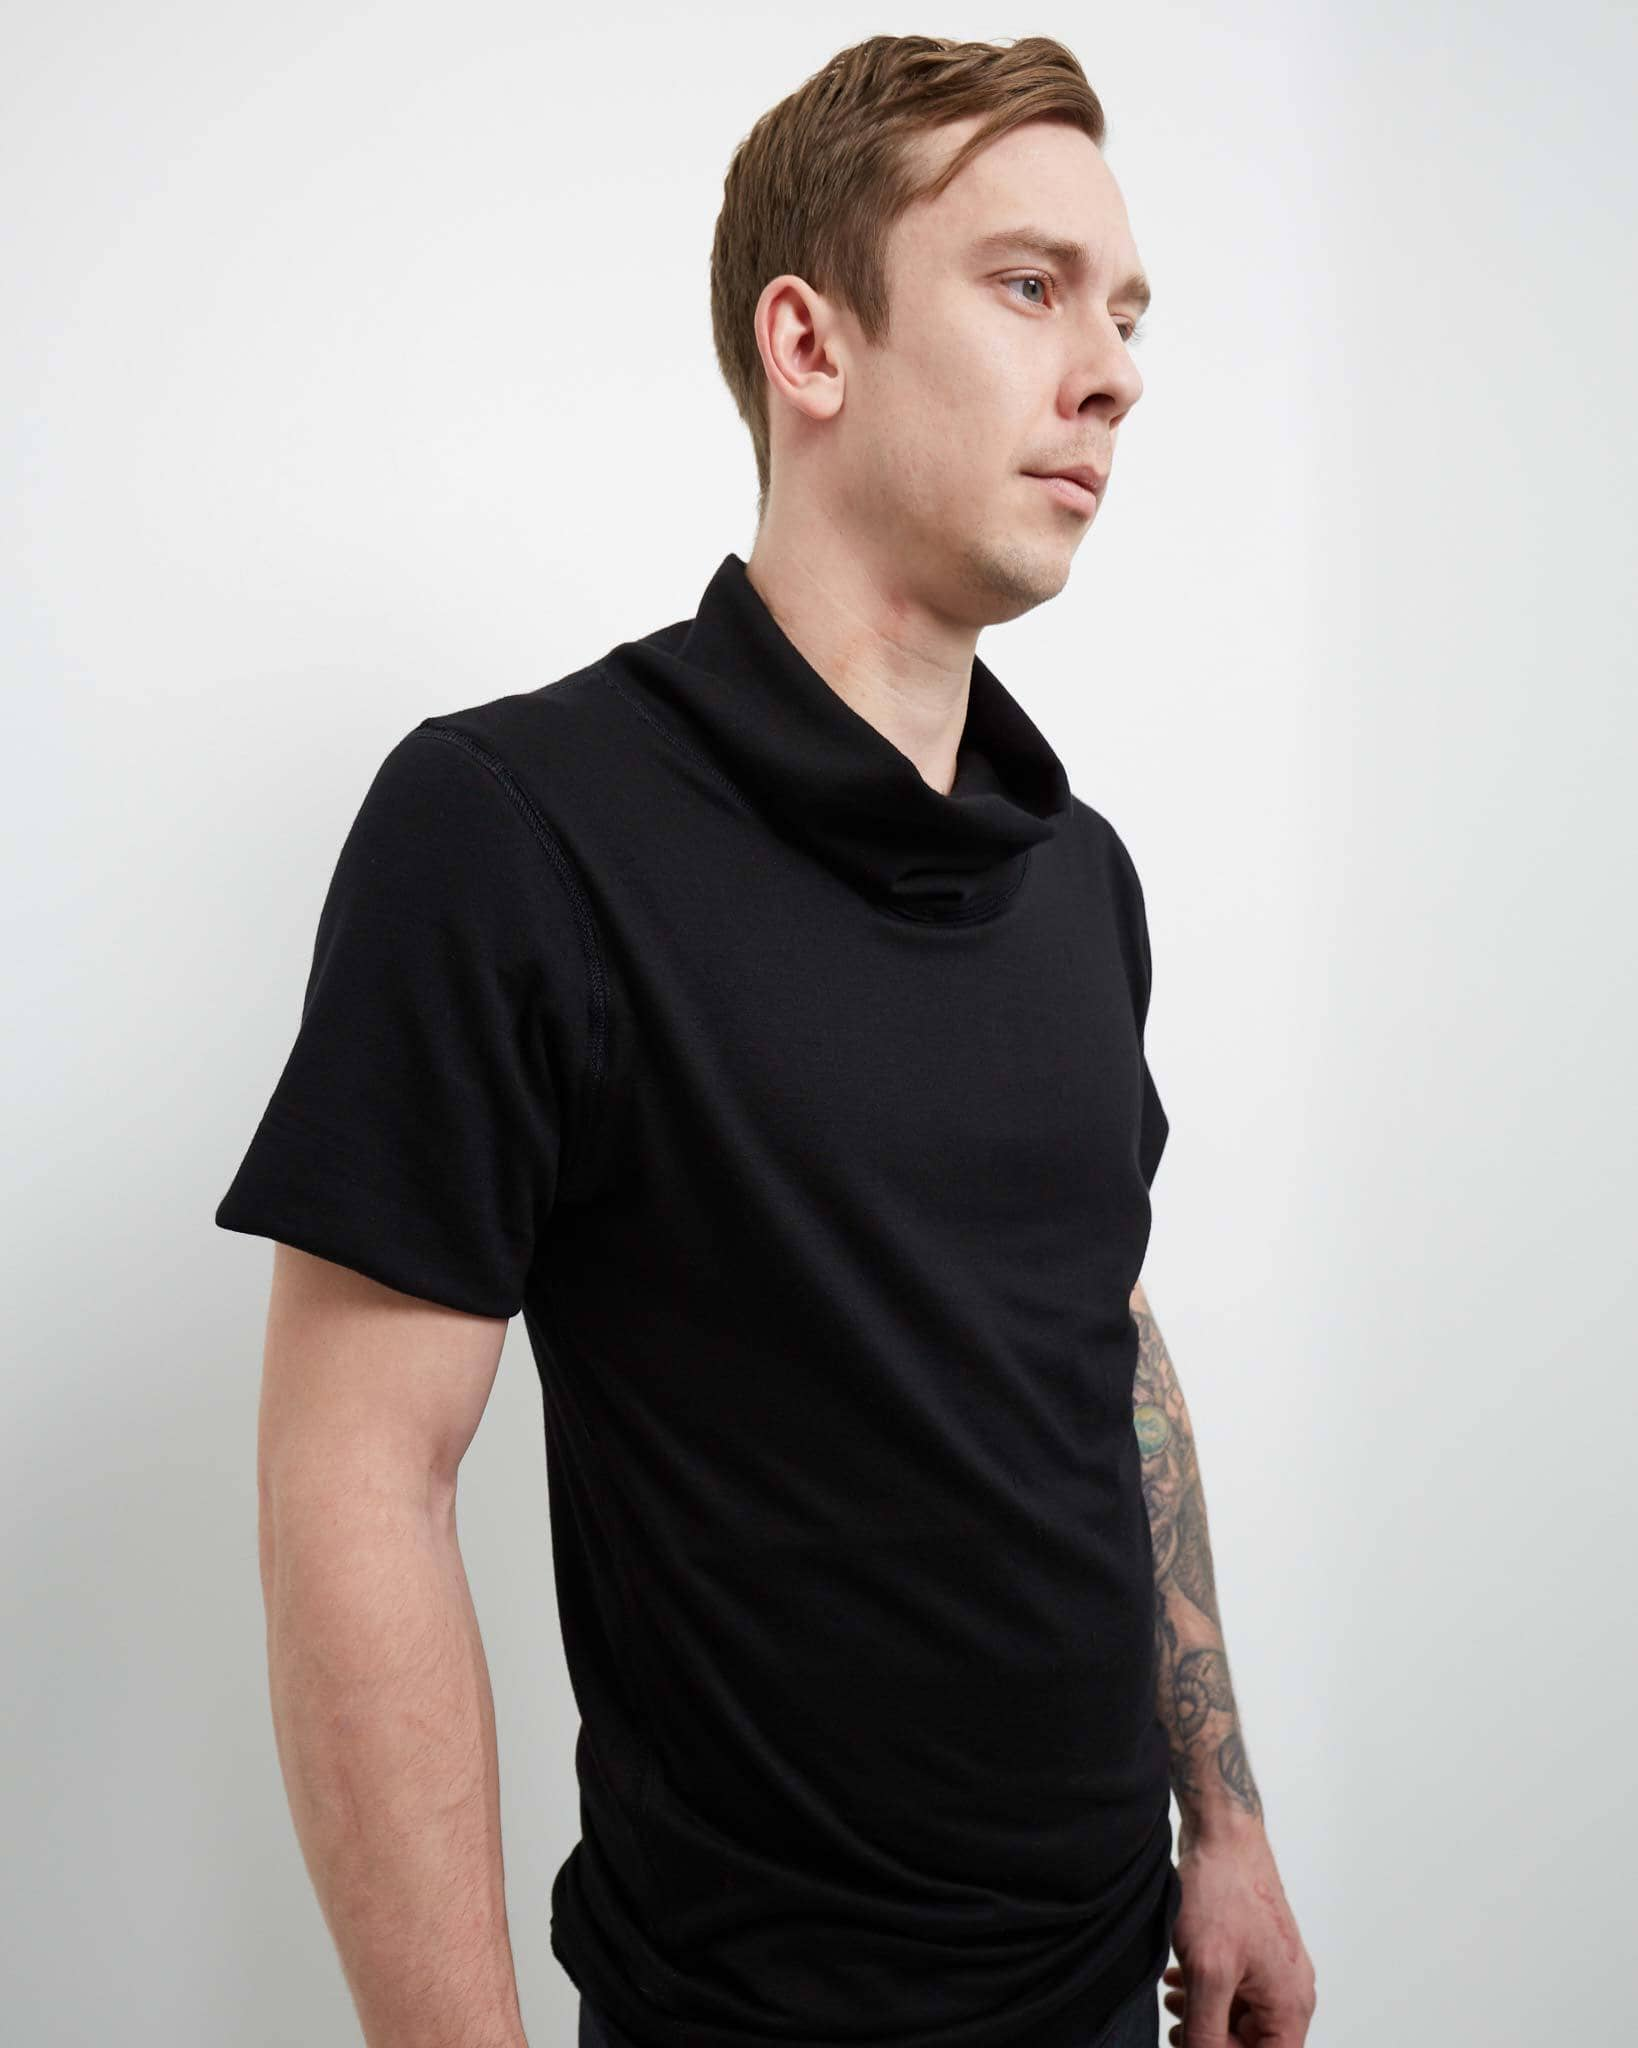 cowl neck casual modern shirt for men